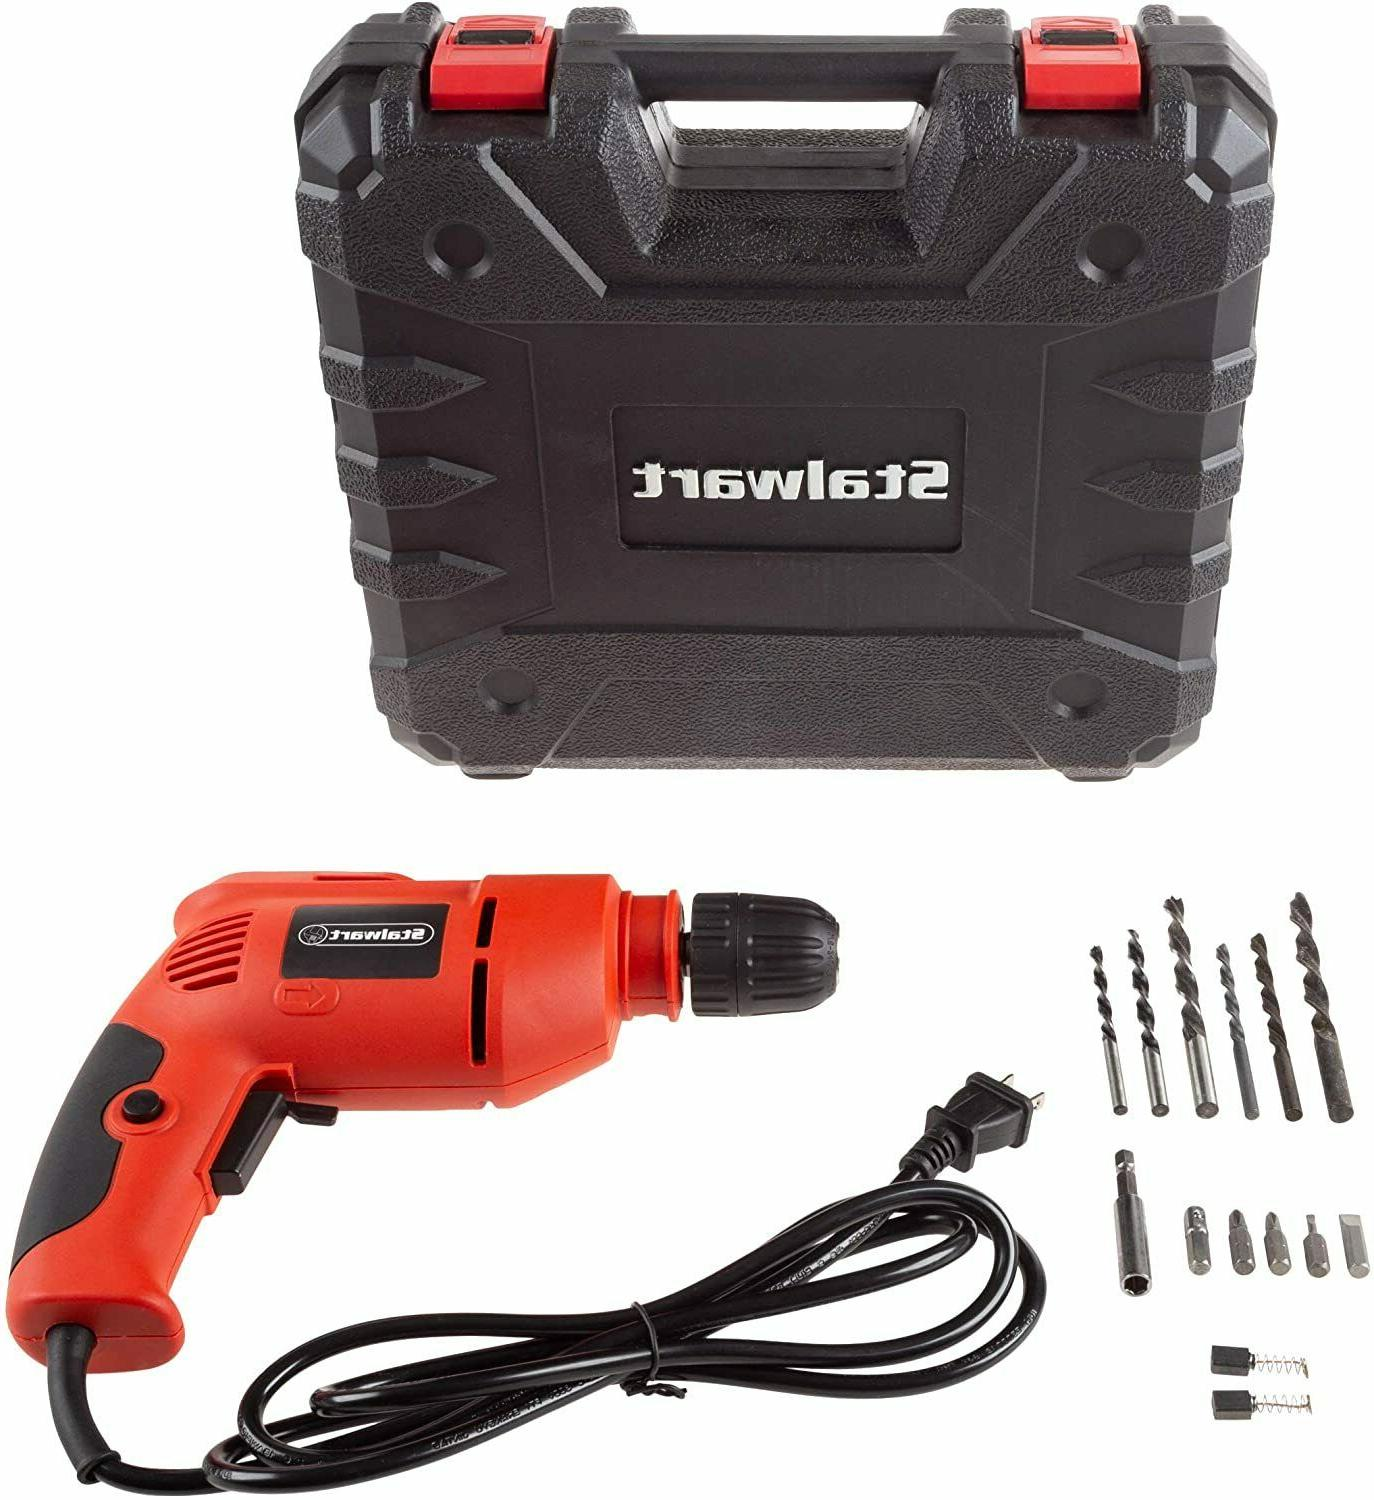 stalwart electric power drill with 6 foot